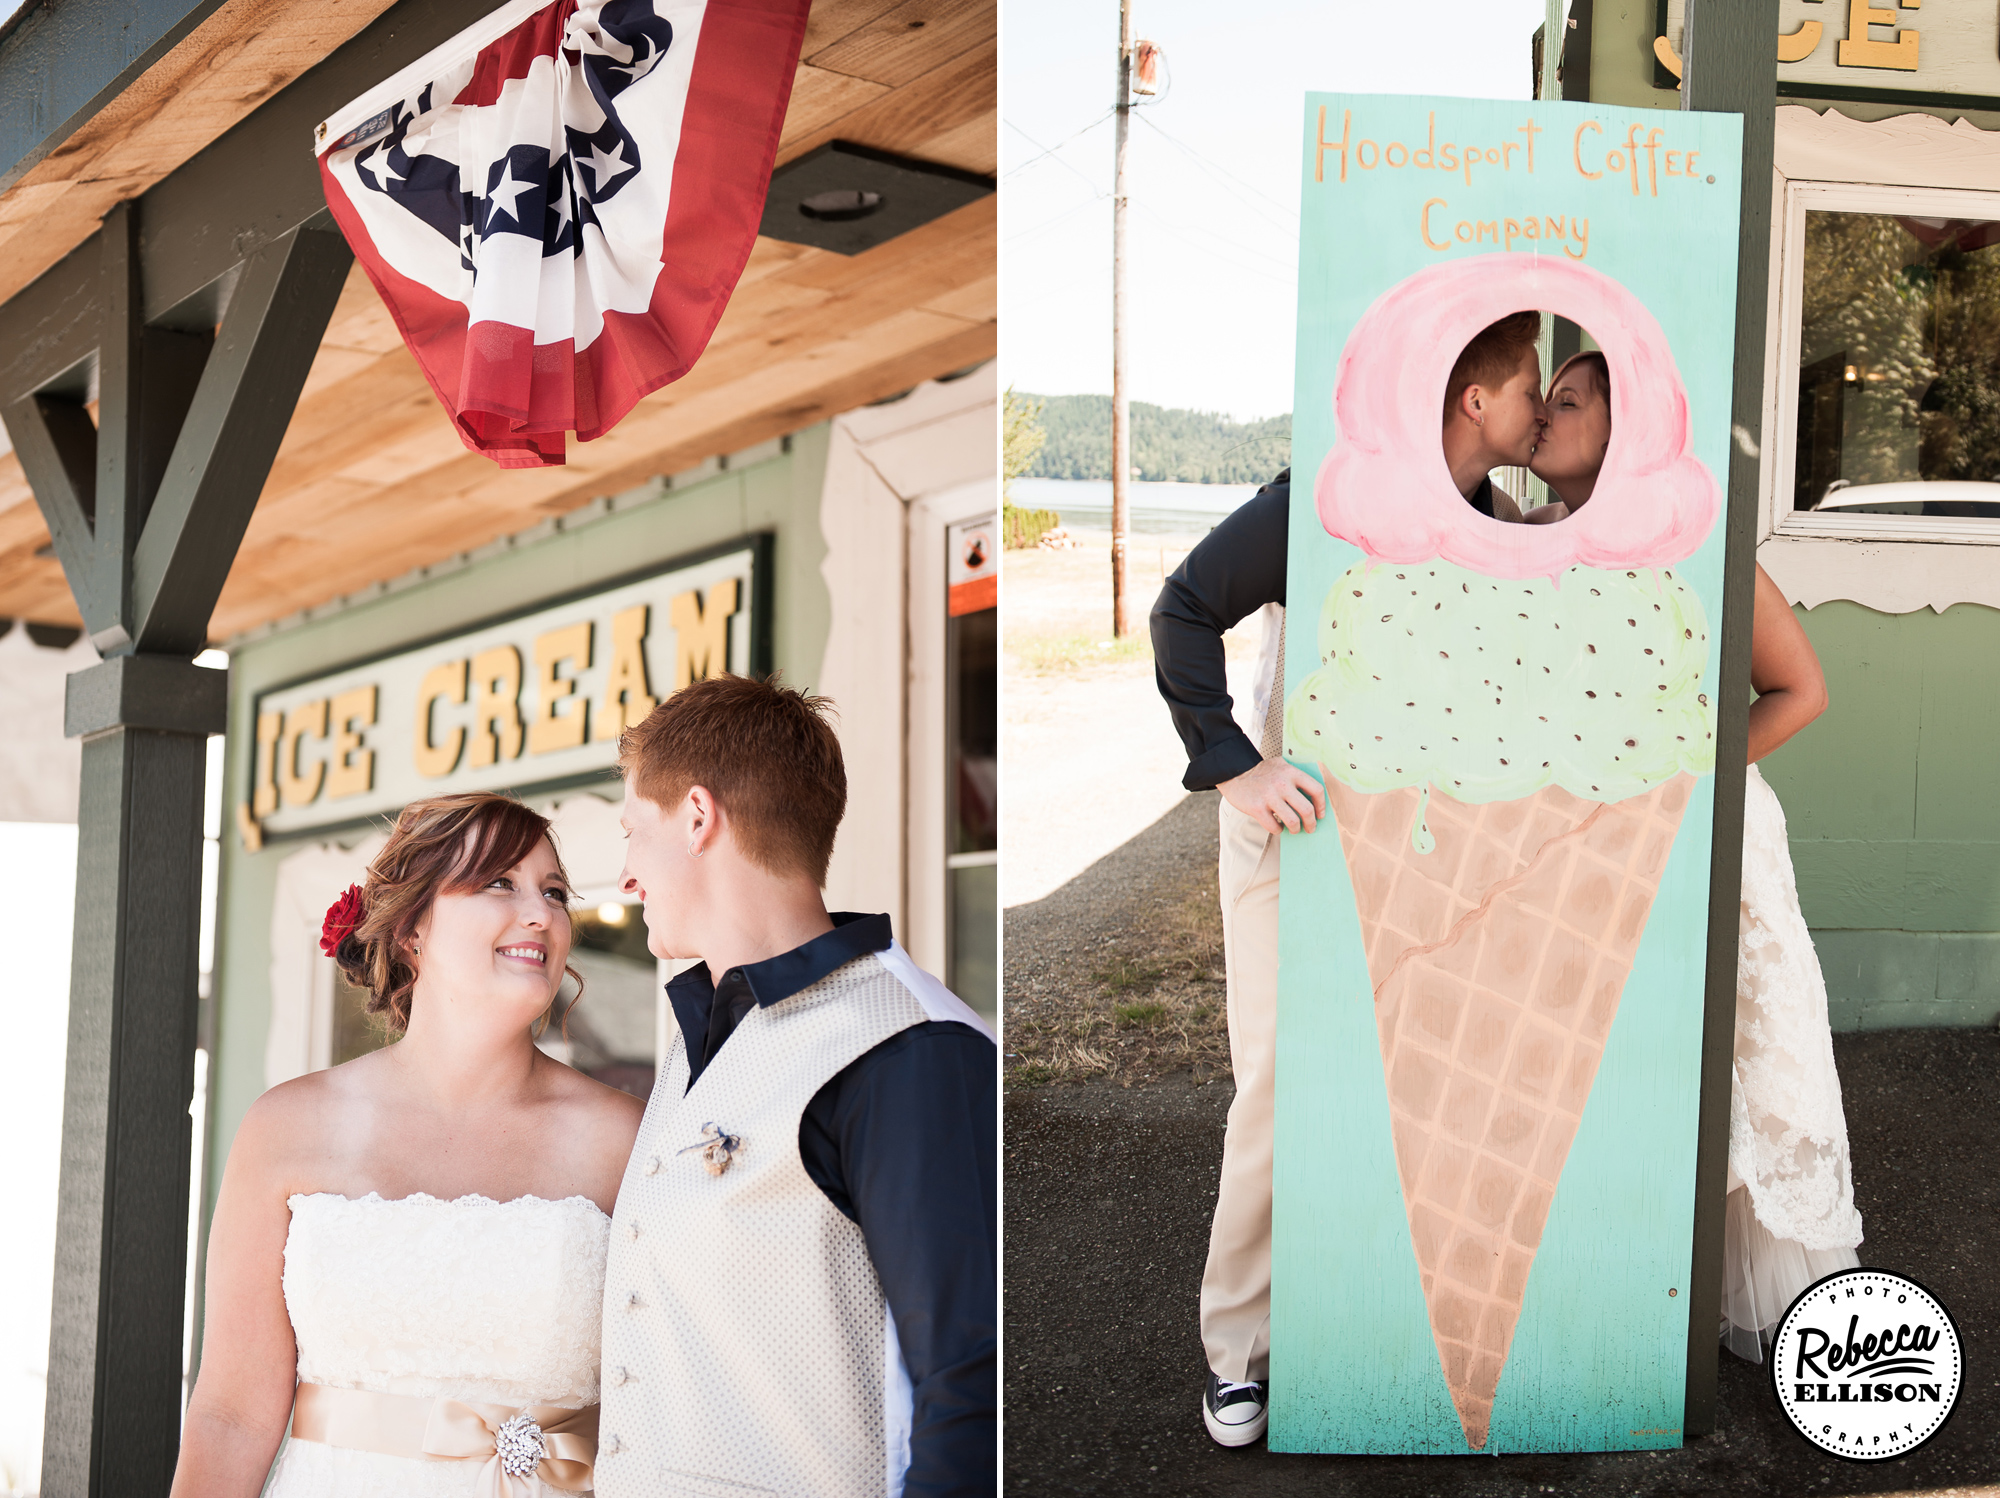 Beachfront wedding featuring vintage signs and an ice cream stand up at Hoodsport Beach Club photographed by Seattle wedding photographer Rebecca Ellison